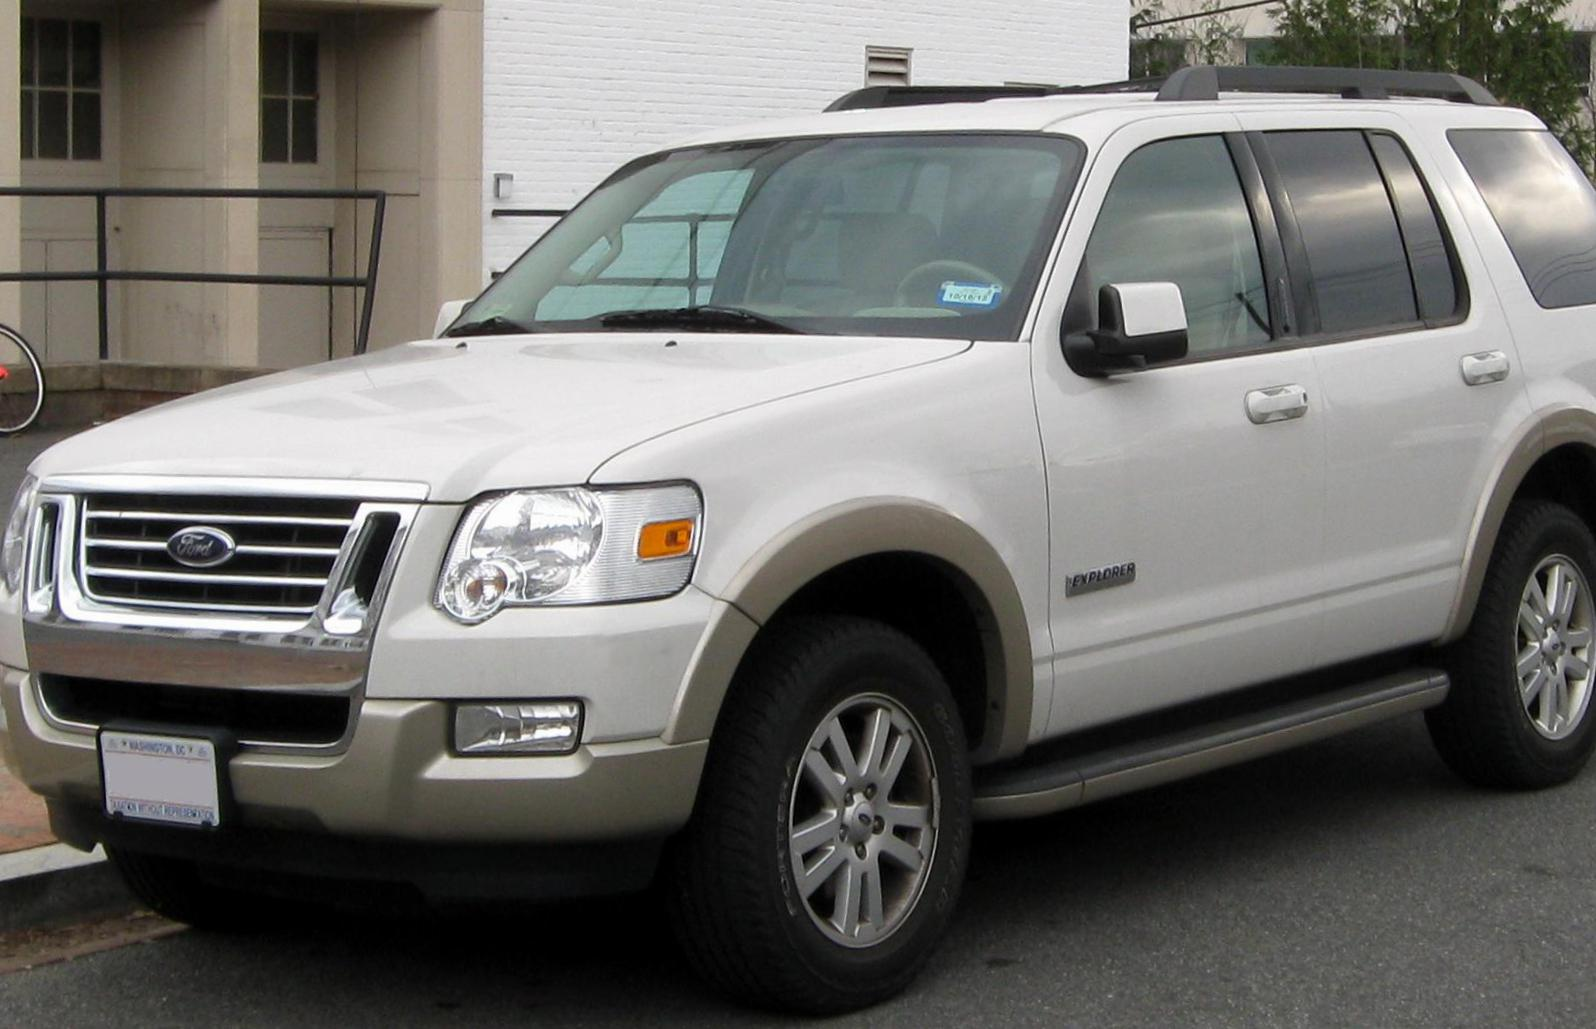 Ford Explorer cost 2006